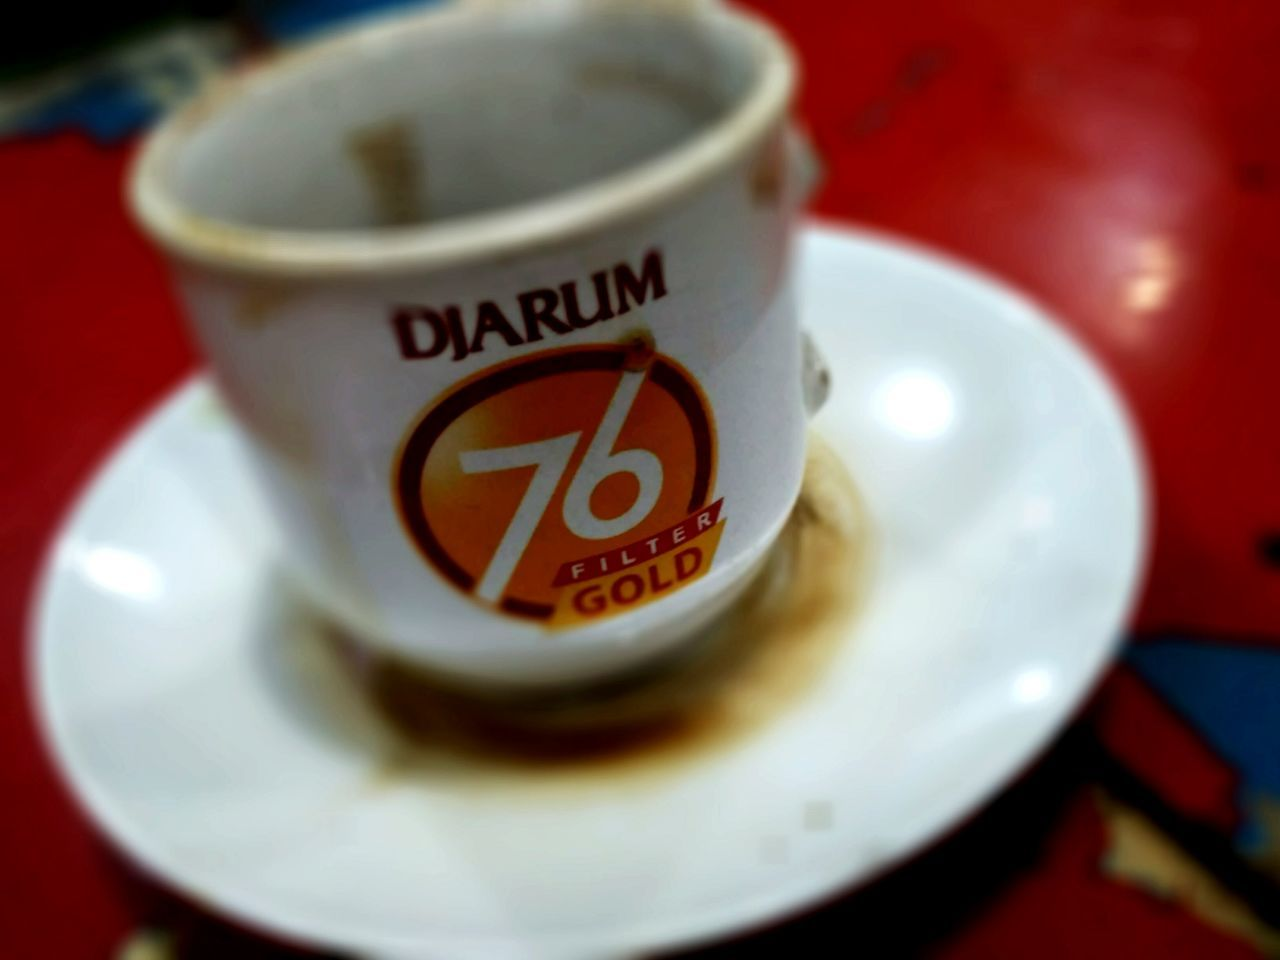 Just coffee and 76 filter gold Djarum Coffee Time No People Communication Close-up Day Indoors  First Eyeem Photo